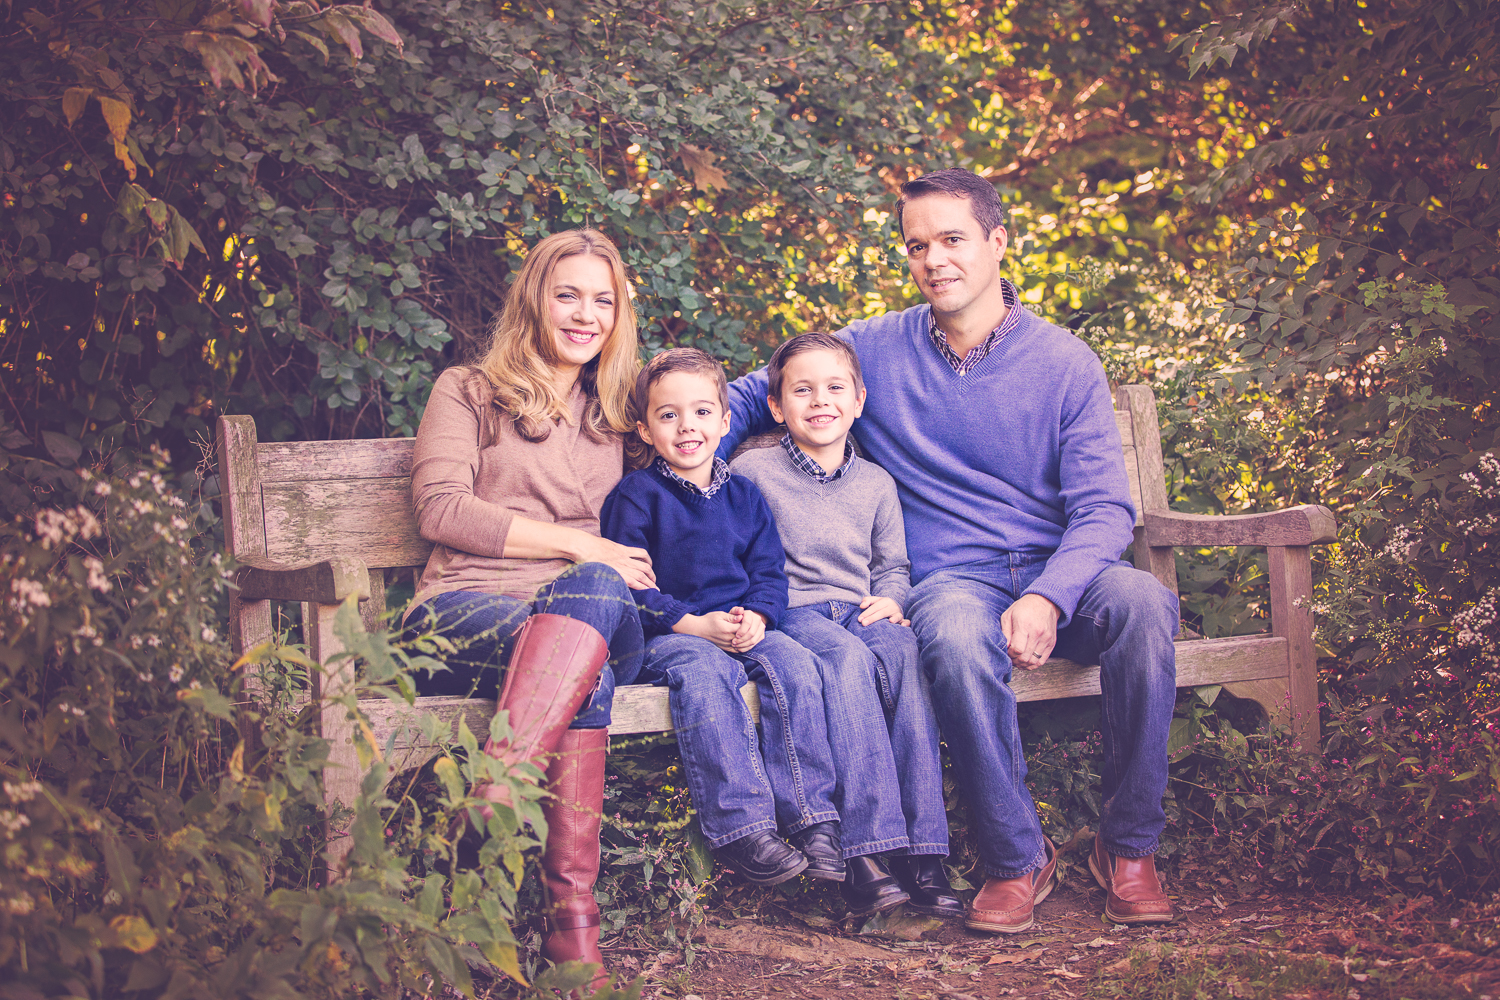 Family photo on a park bench with blue and camel color scheme